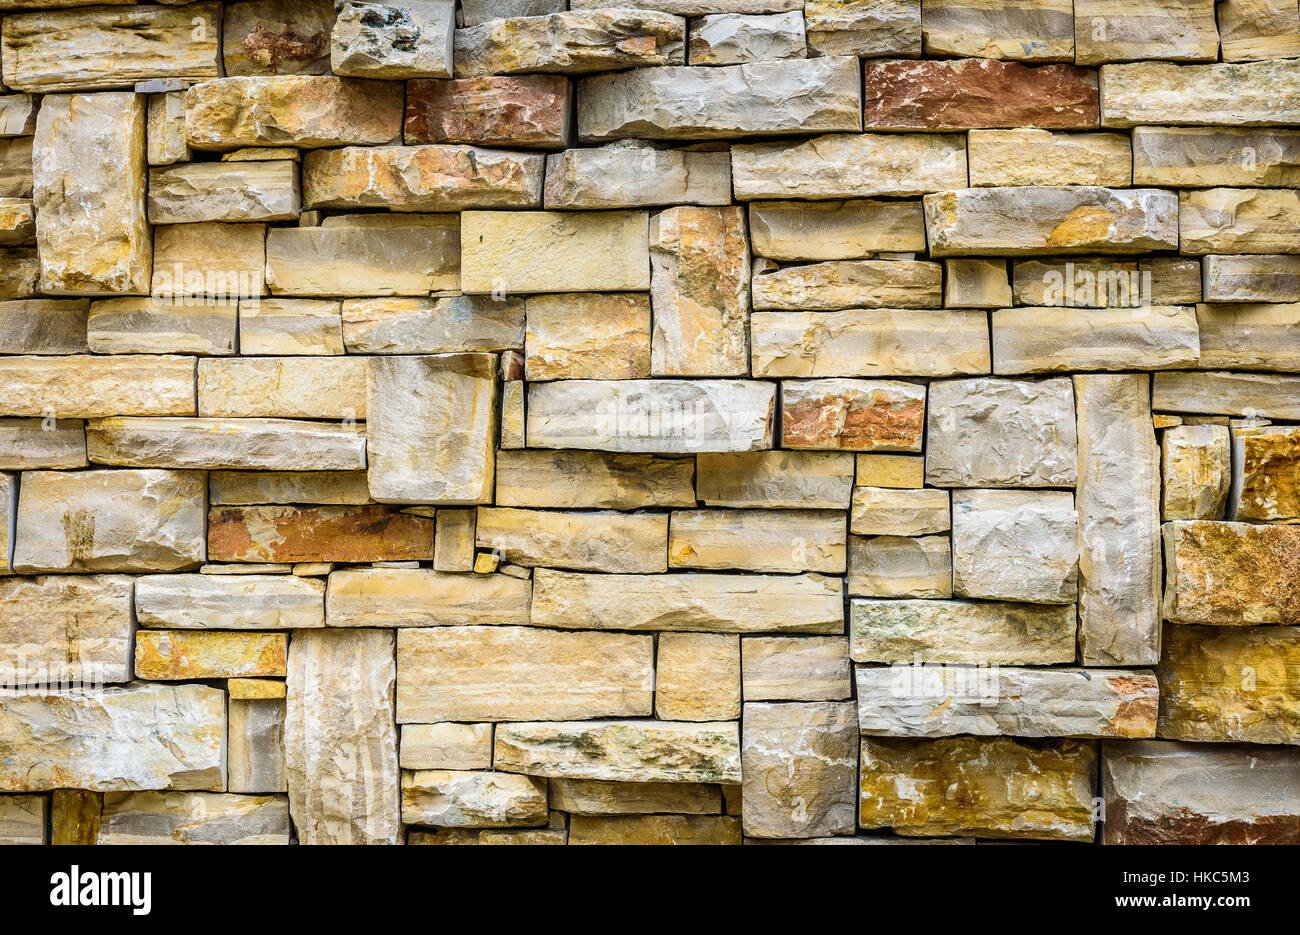 Fancy Wall Stones : Modern pattern natural stone brick decorative wall texture